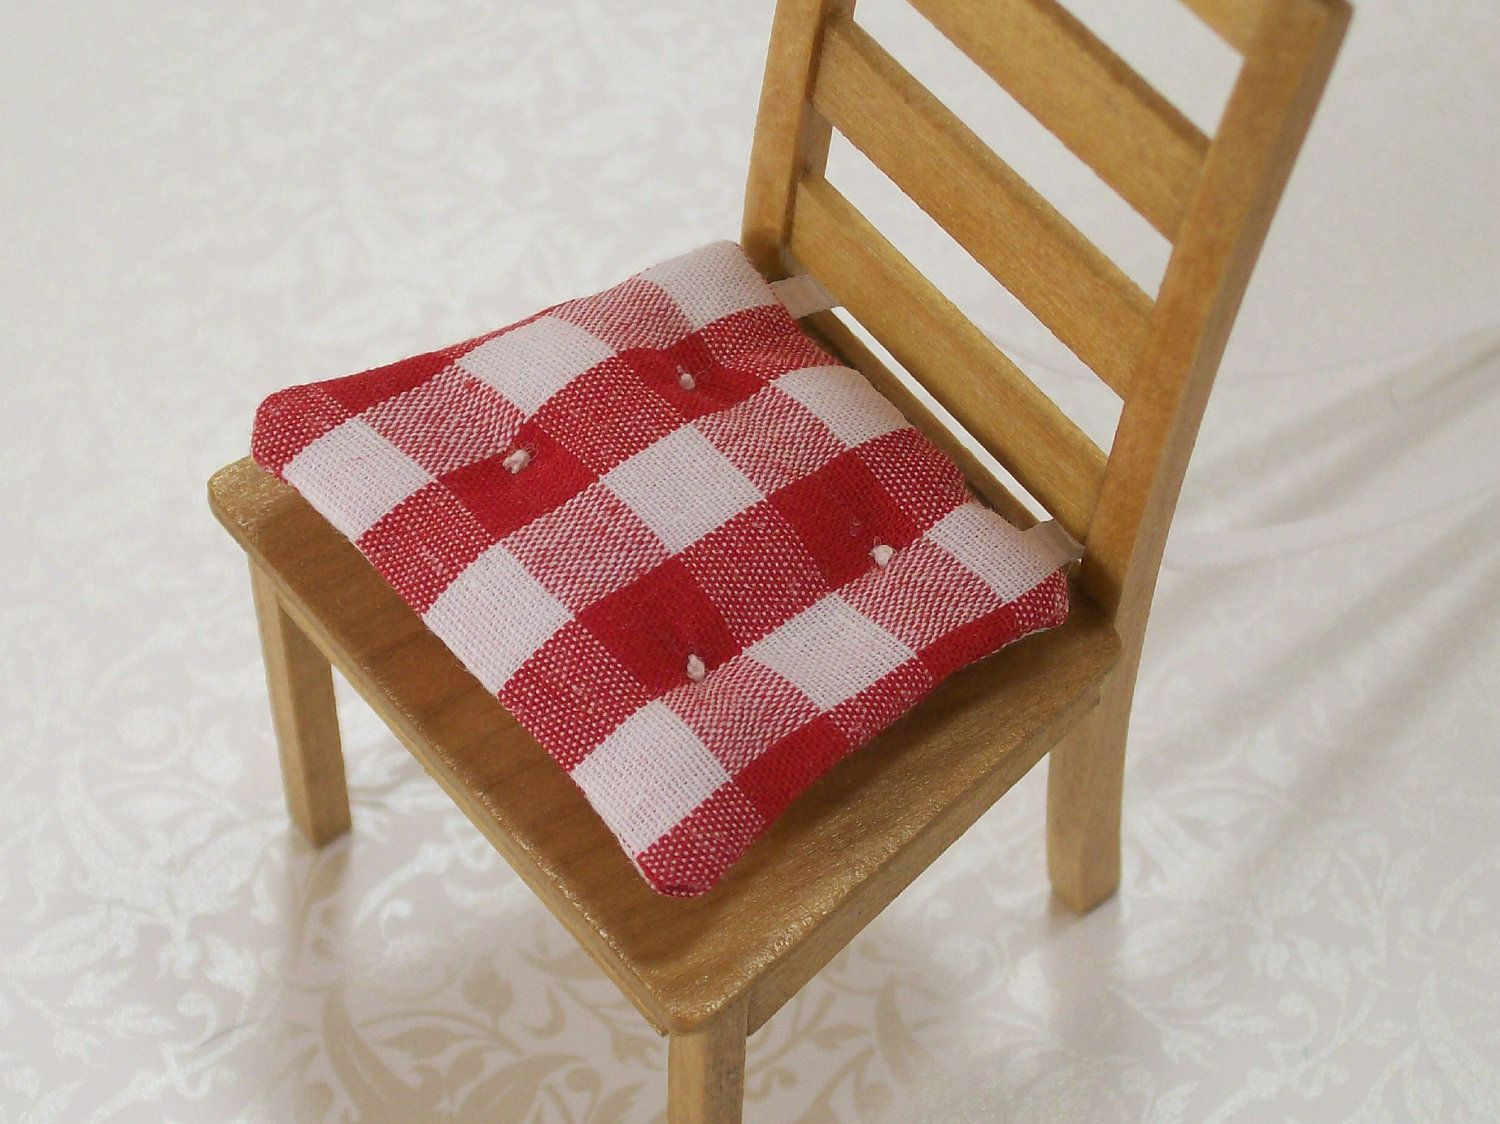 Red White Gingham Kitchen Chair Cushions Dolls House Miniature Kitchen Chair Cushions Chair Cushions Kitchen Chairs